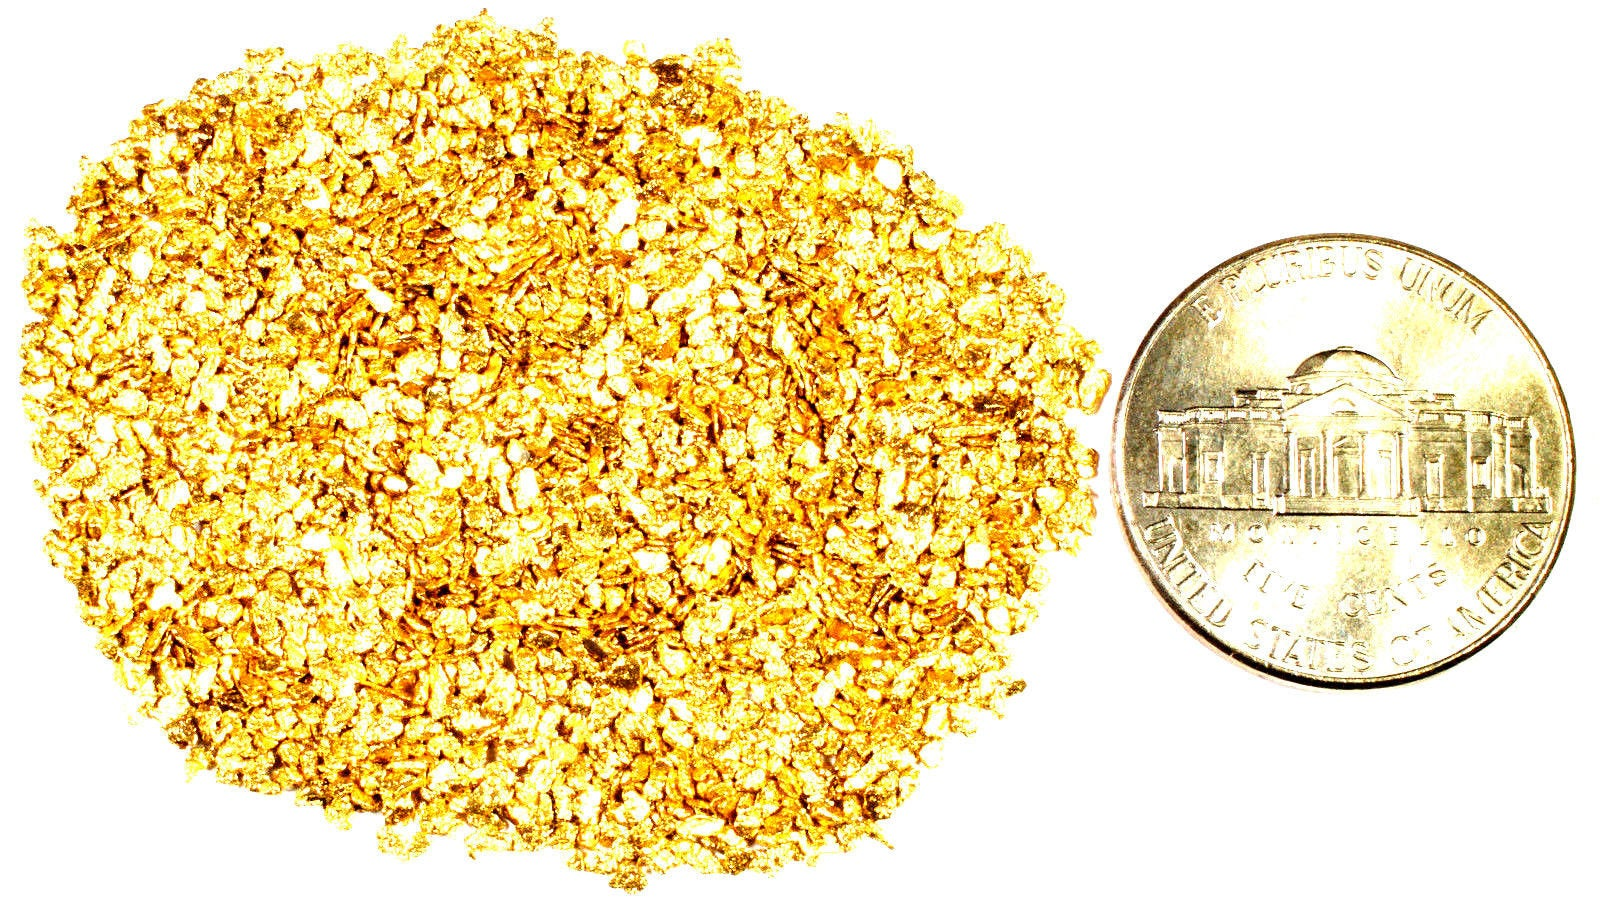 0.125 GRAMS ALASKAN YUKON BC NATURAL PURE GOLD NUGGETS #20 MESH - Liquidbullion